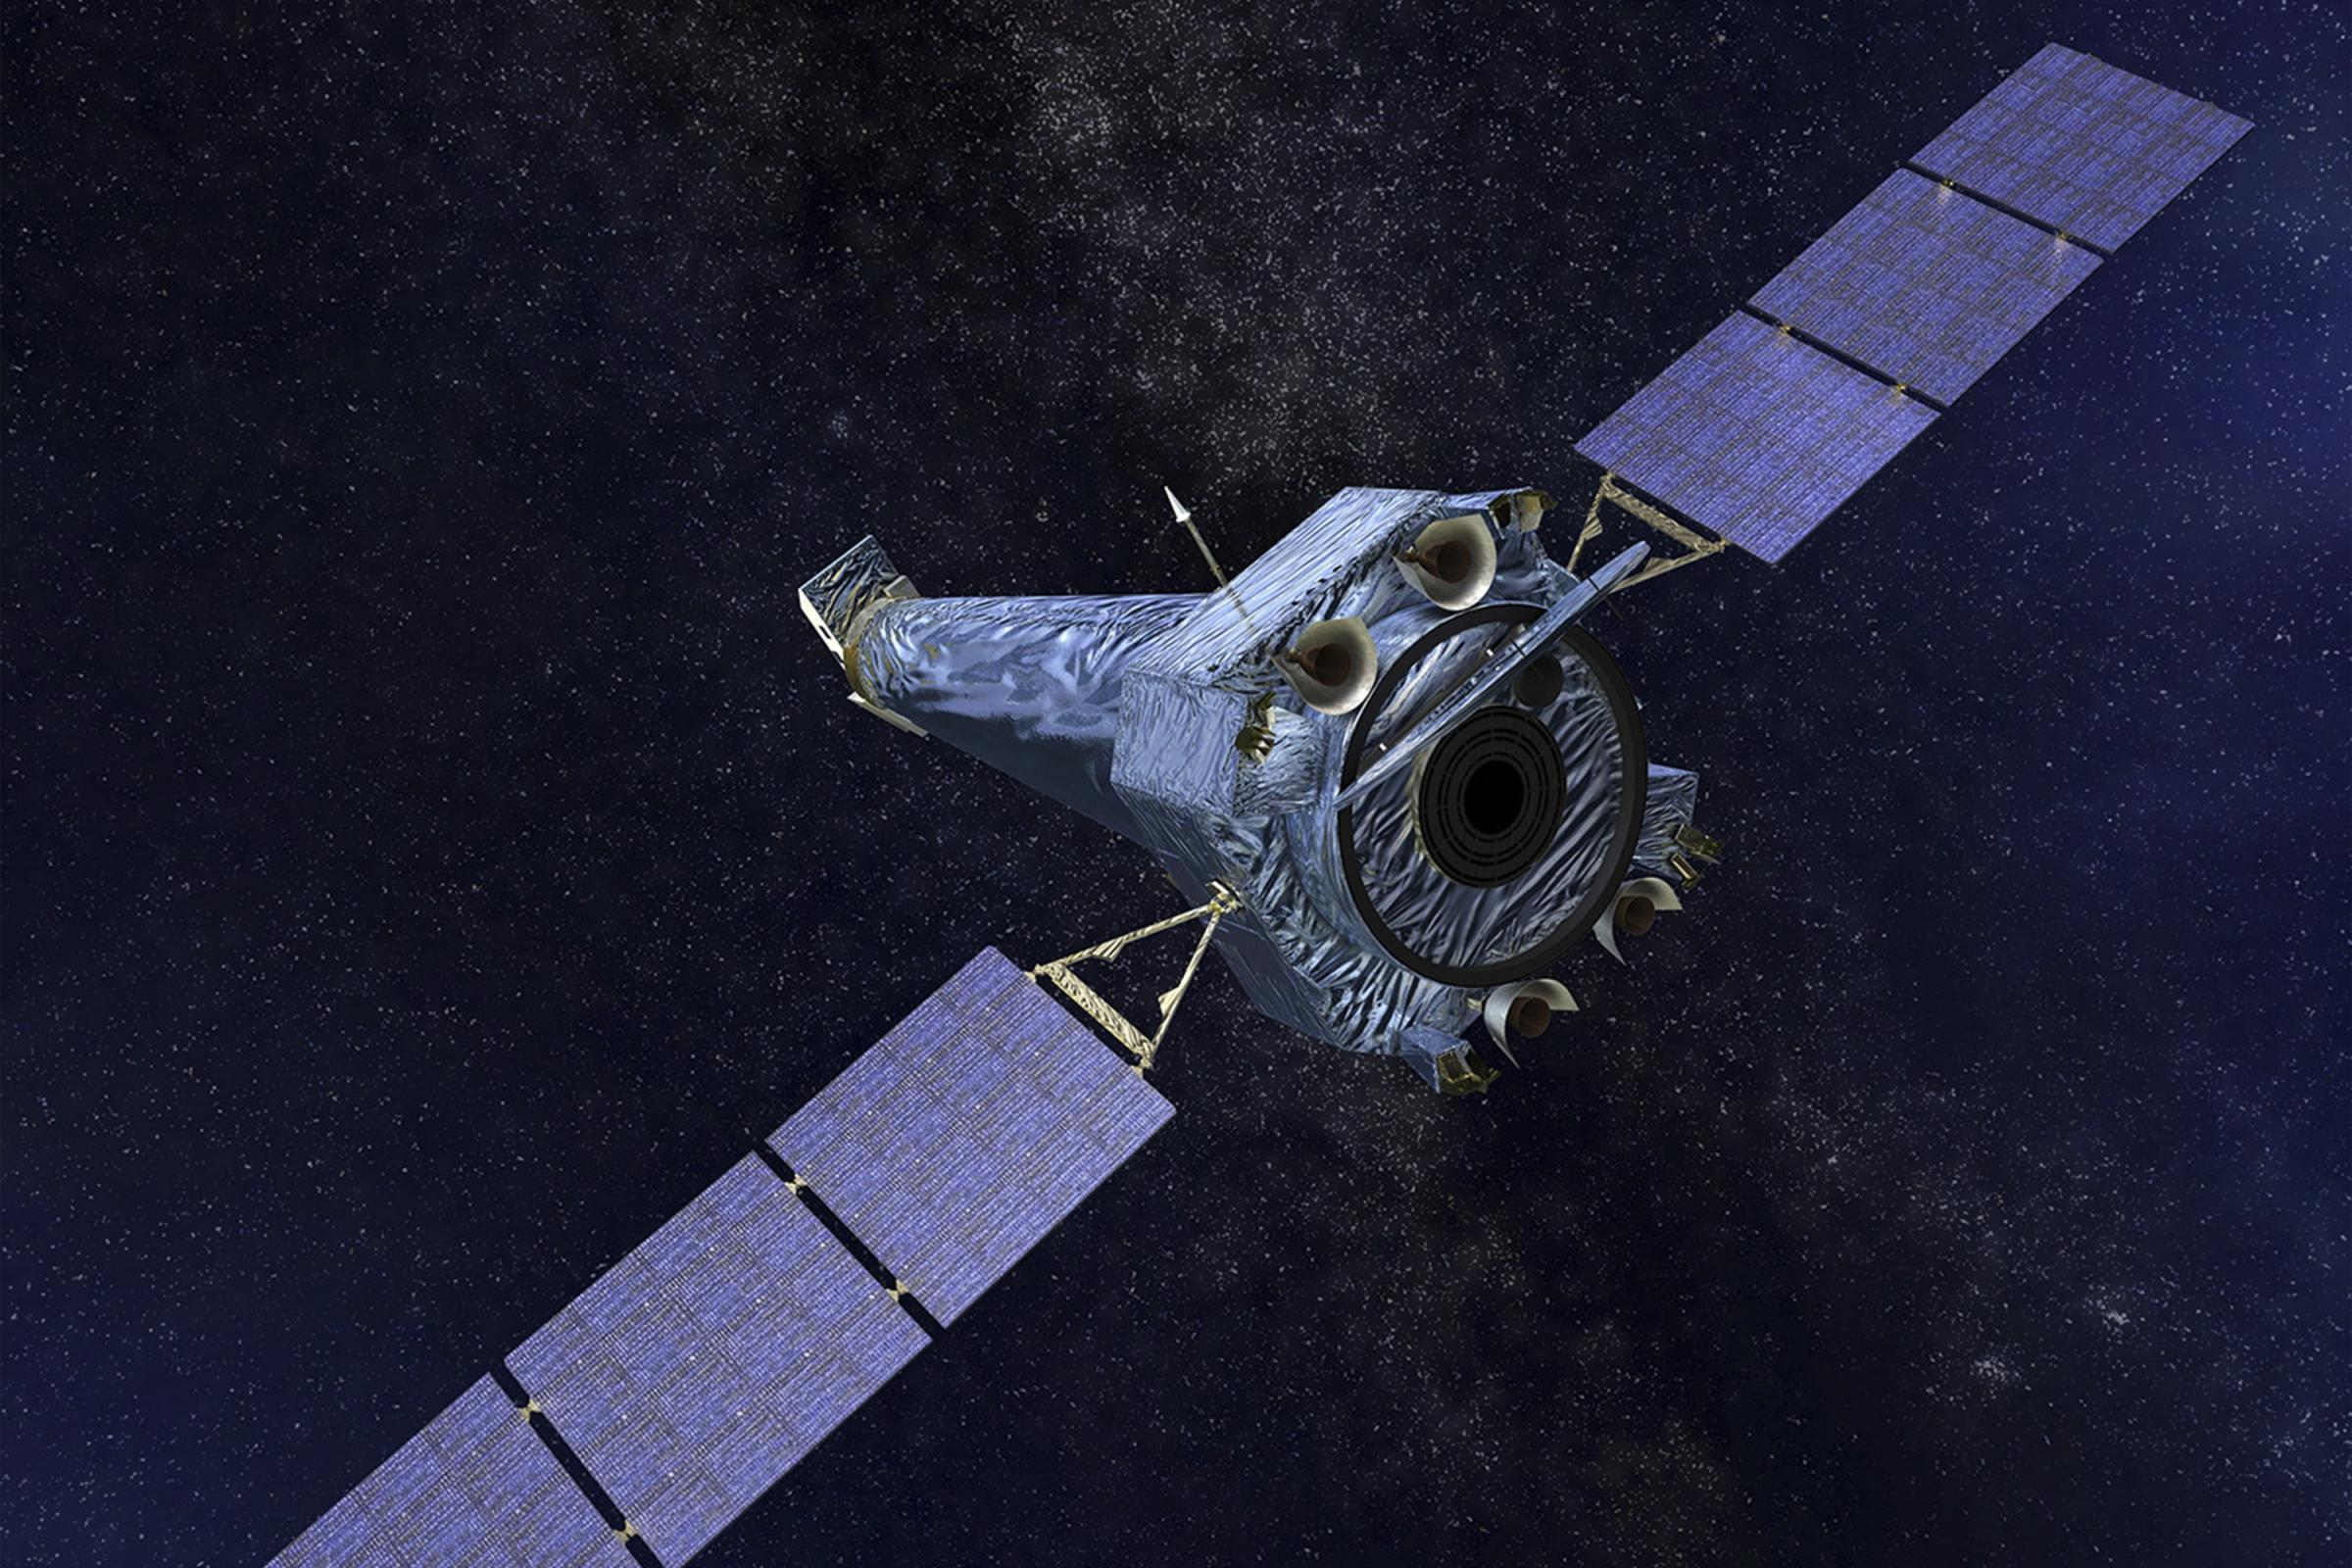 Illustration showing the Chandra X-ray Observatory